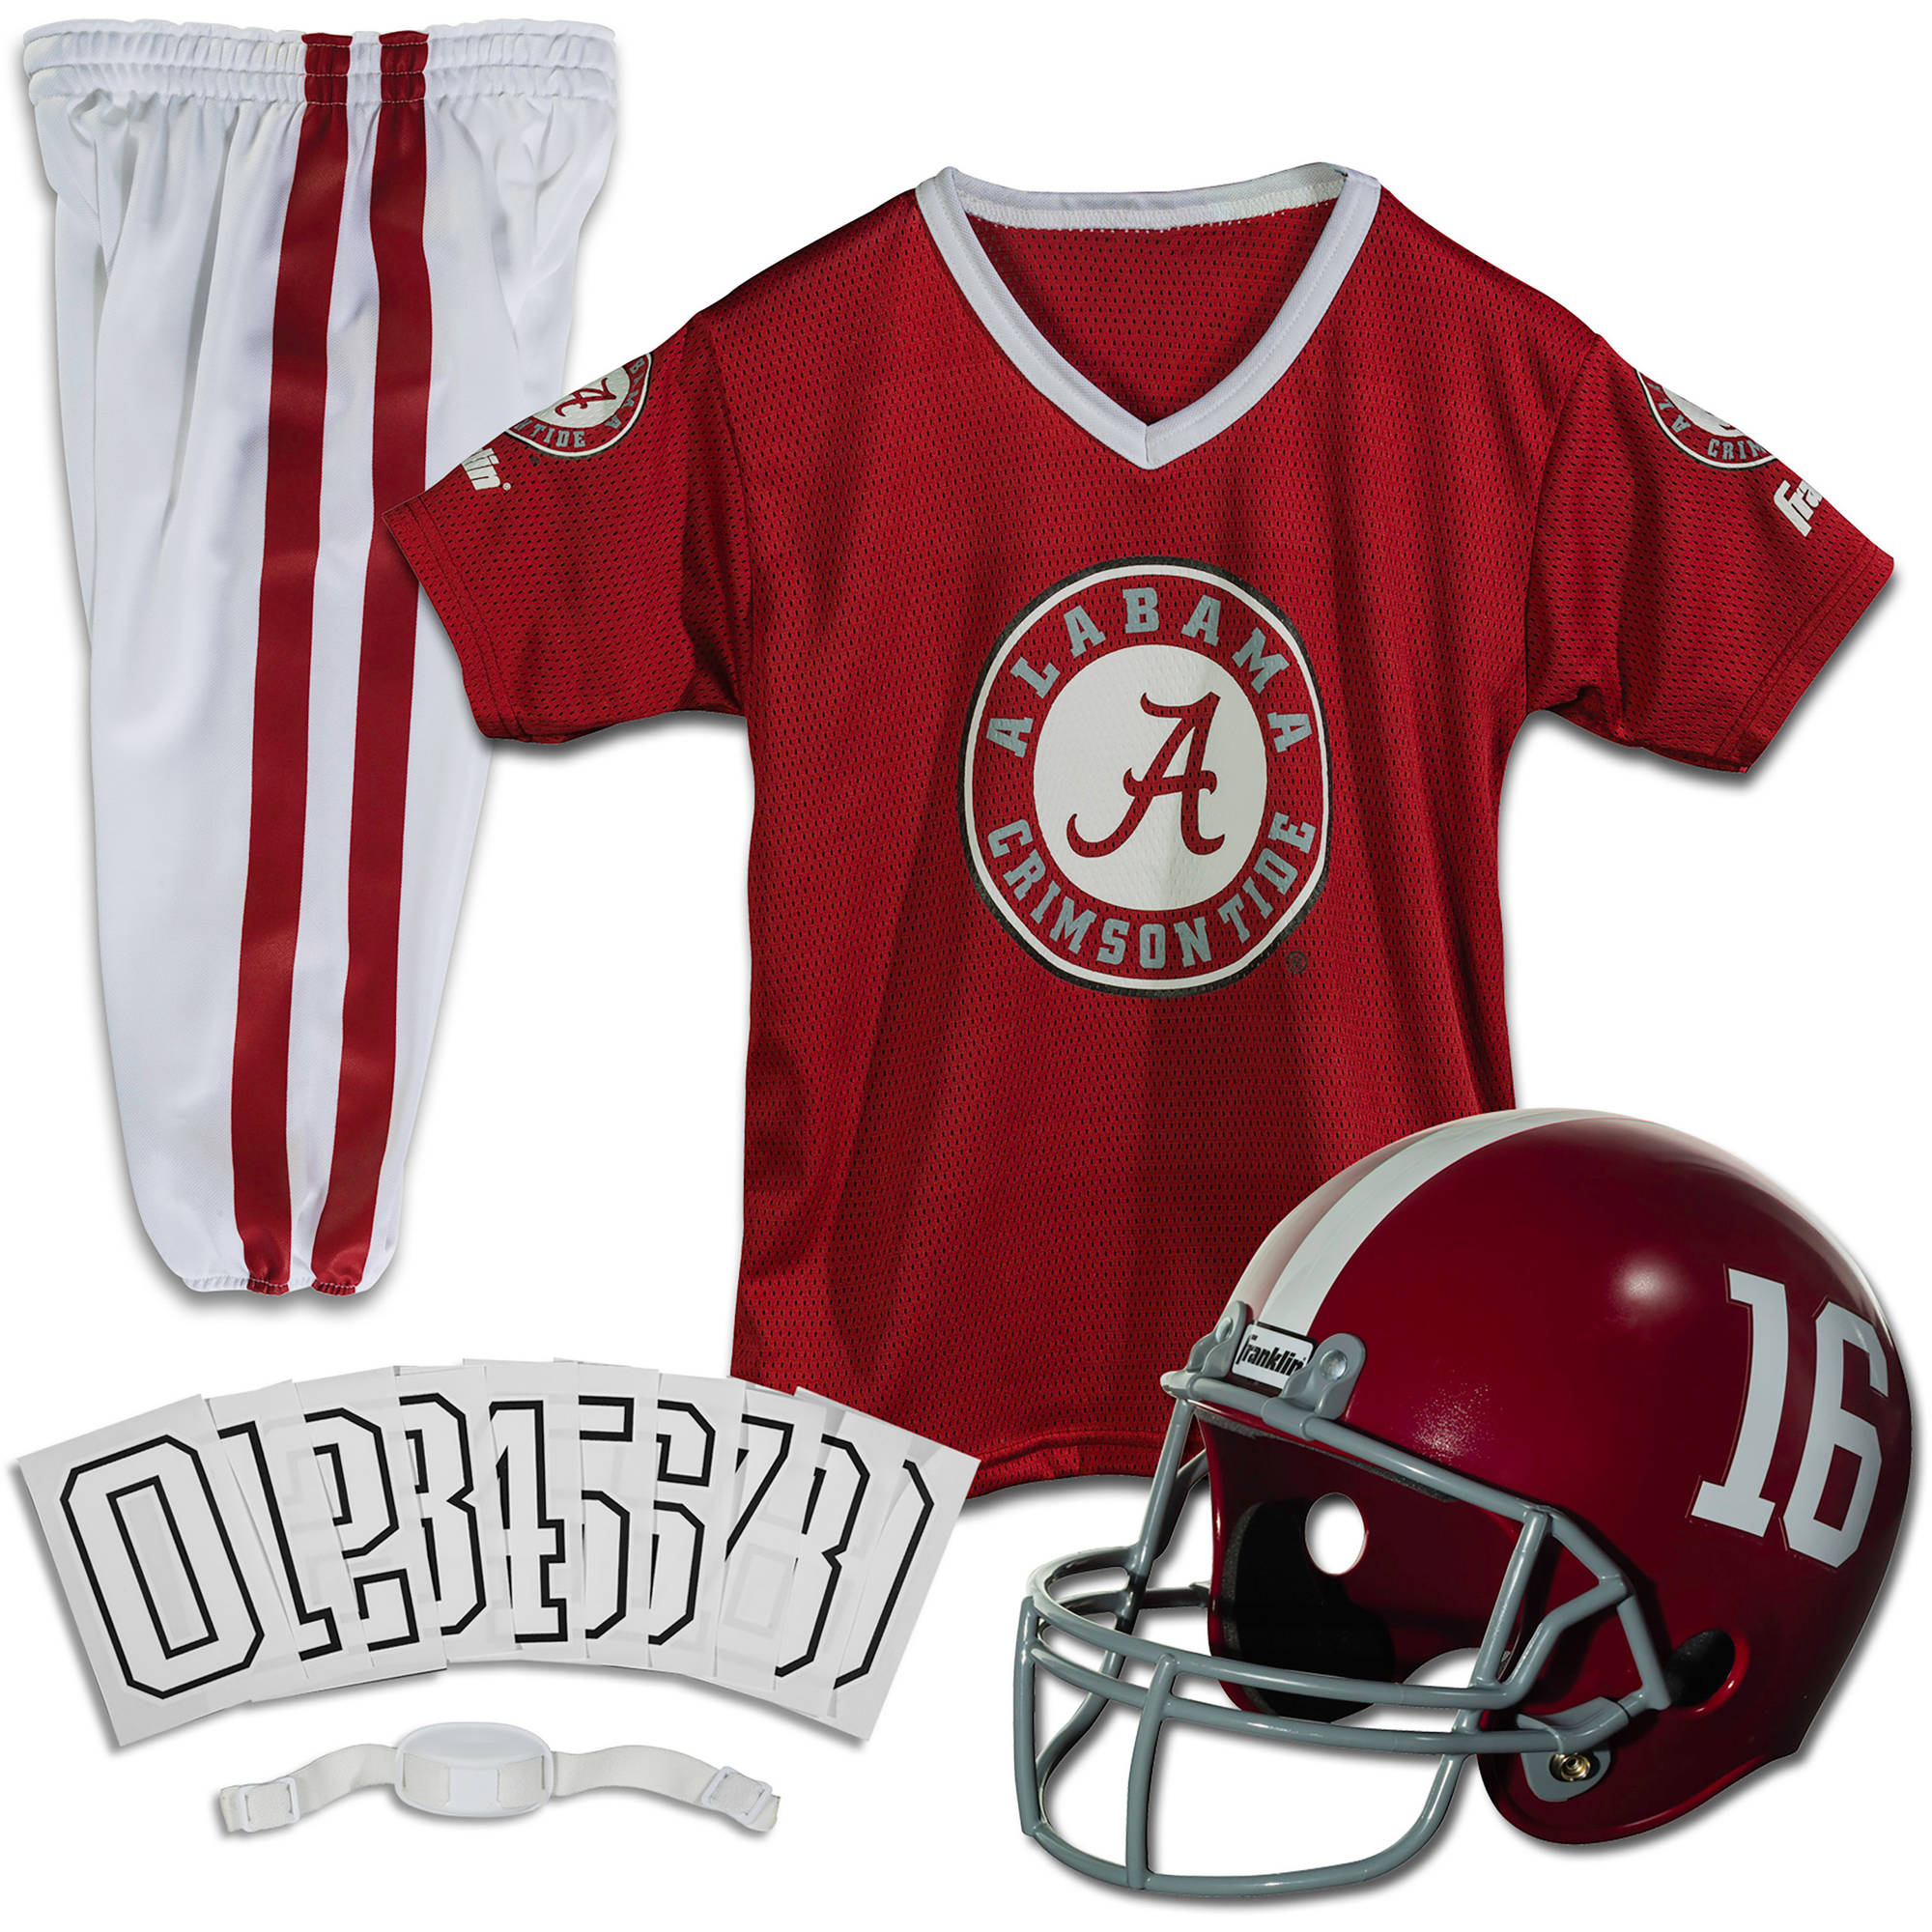 Franklin Sports NCAA Uniform Set, Alabama